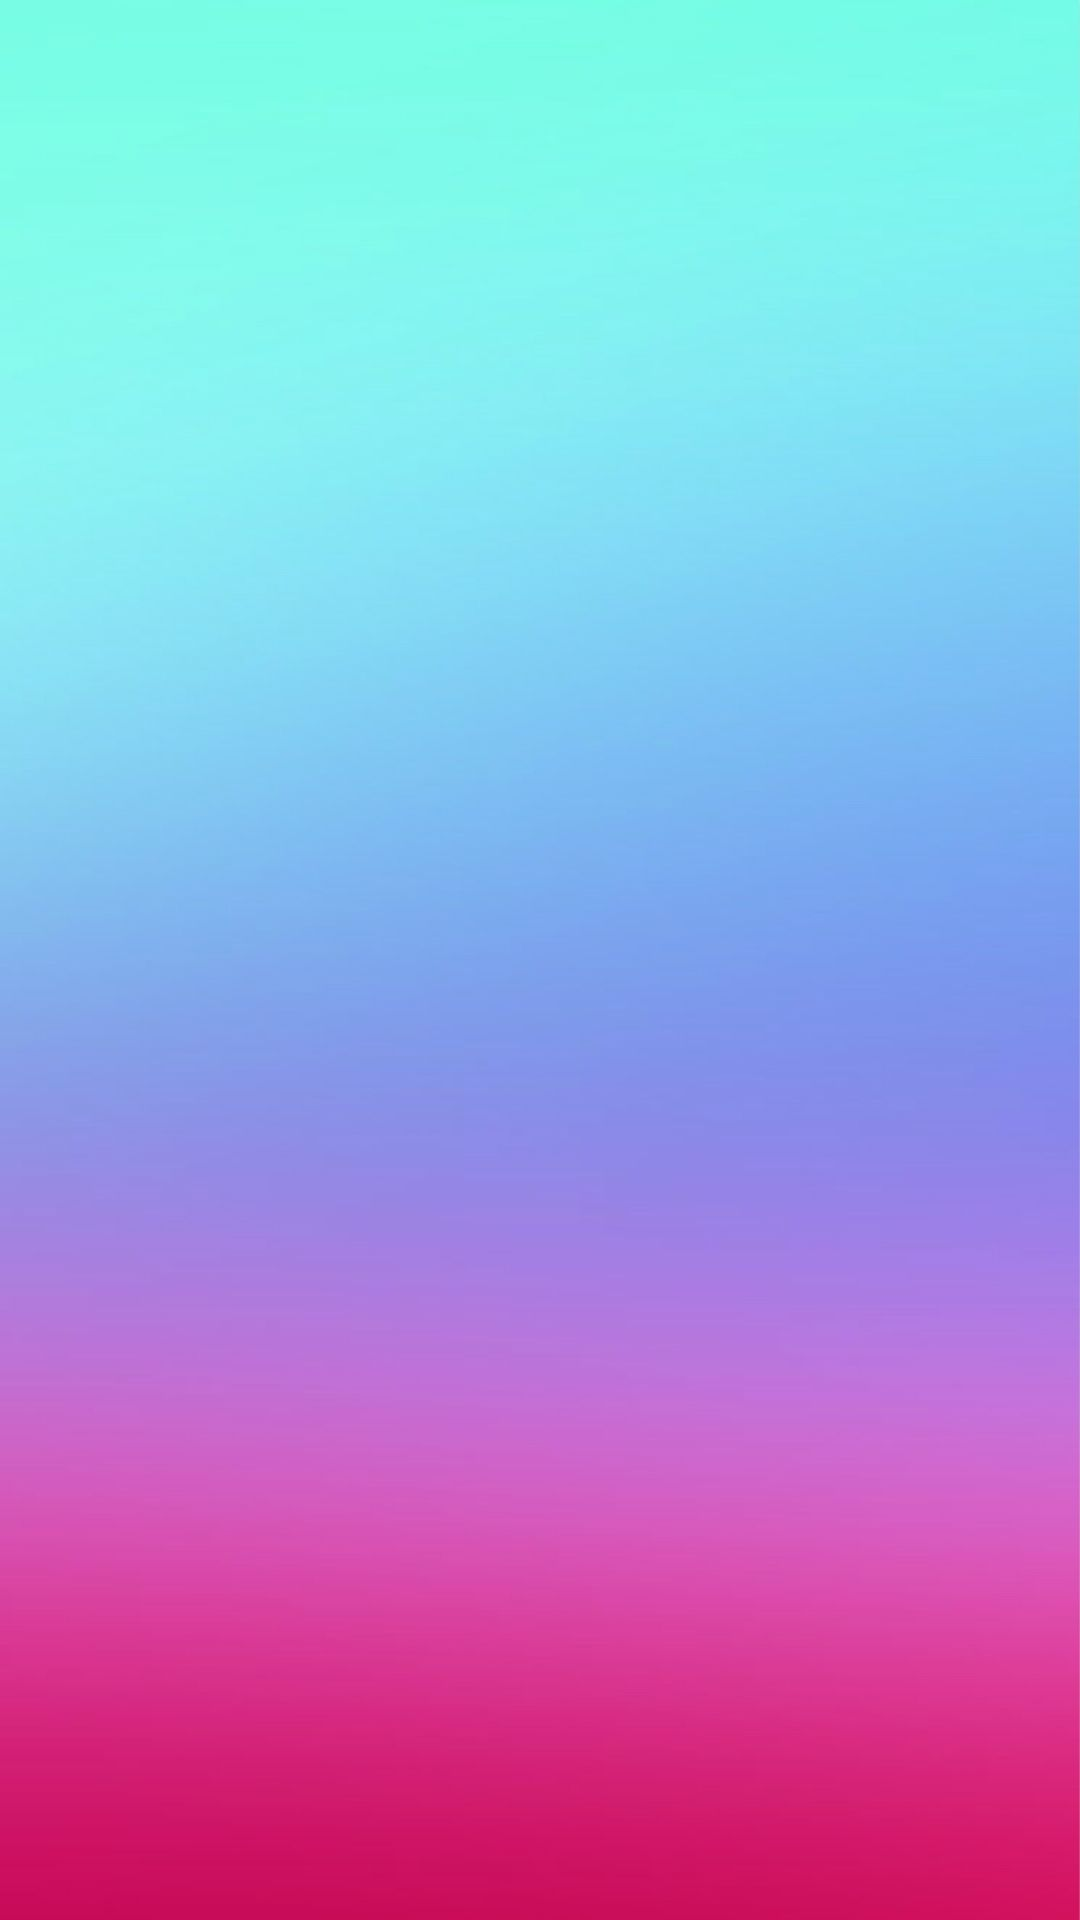 cyan  blue  magenta gradation background